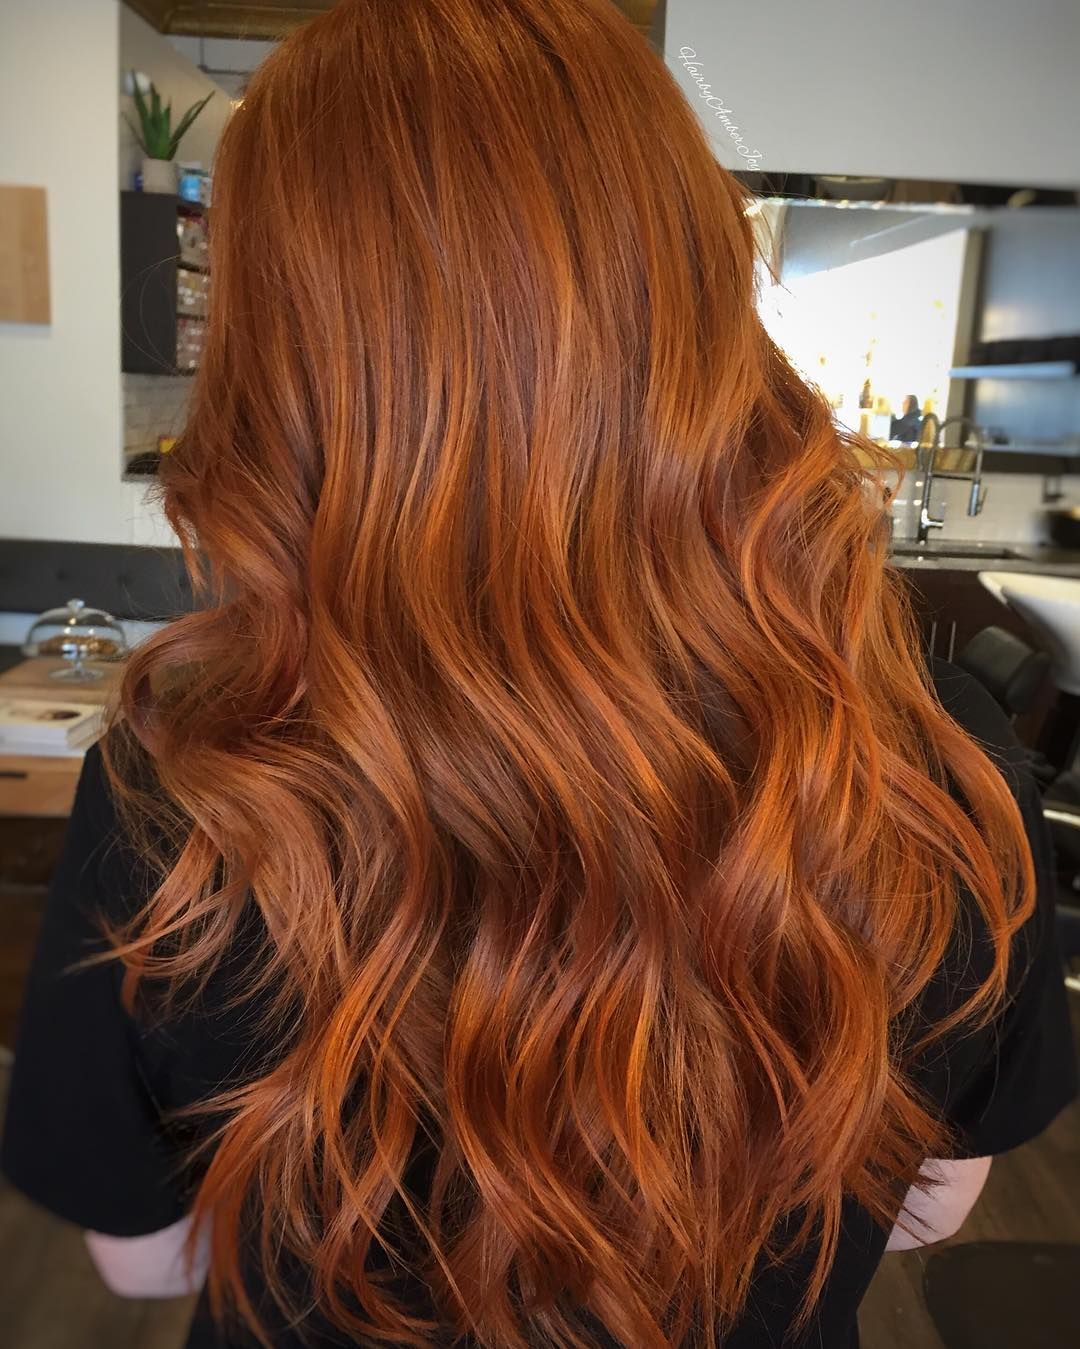 brave. brought @chelseamcm natural ginger color back to life with